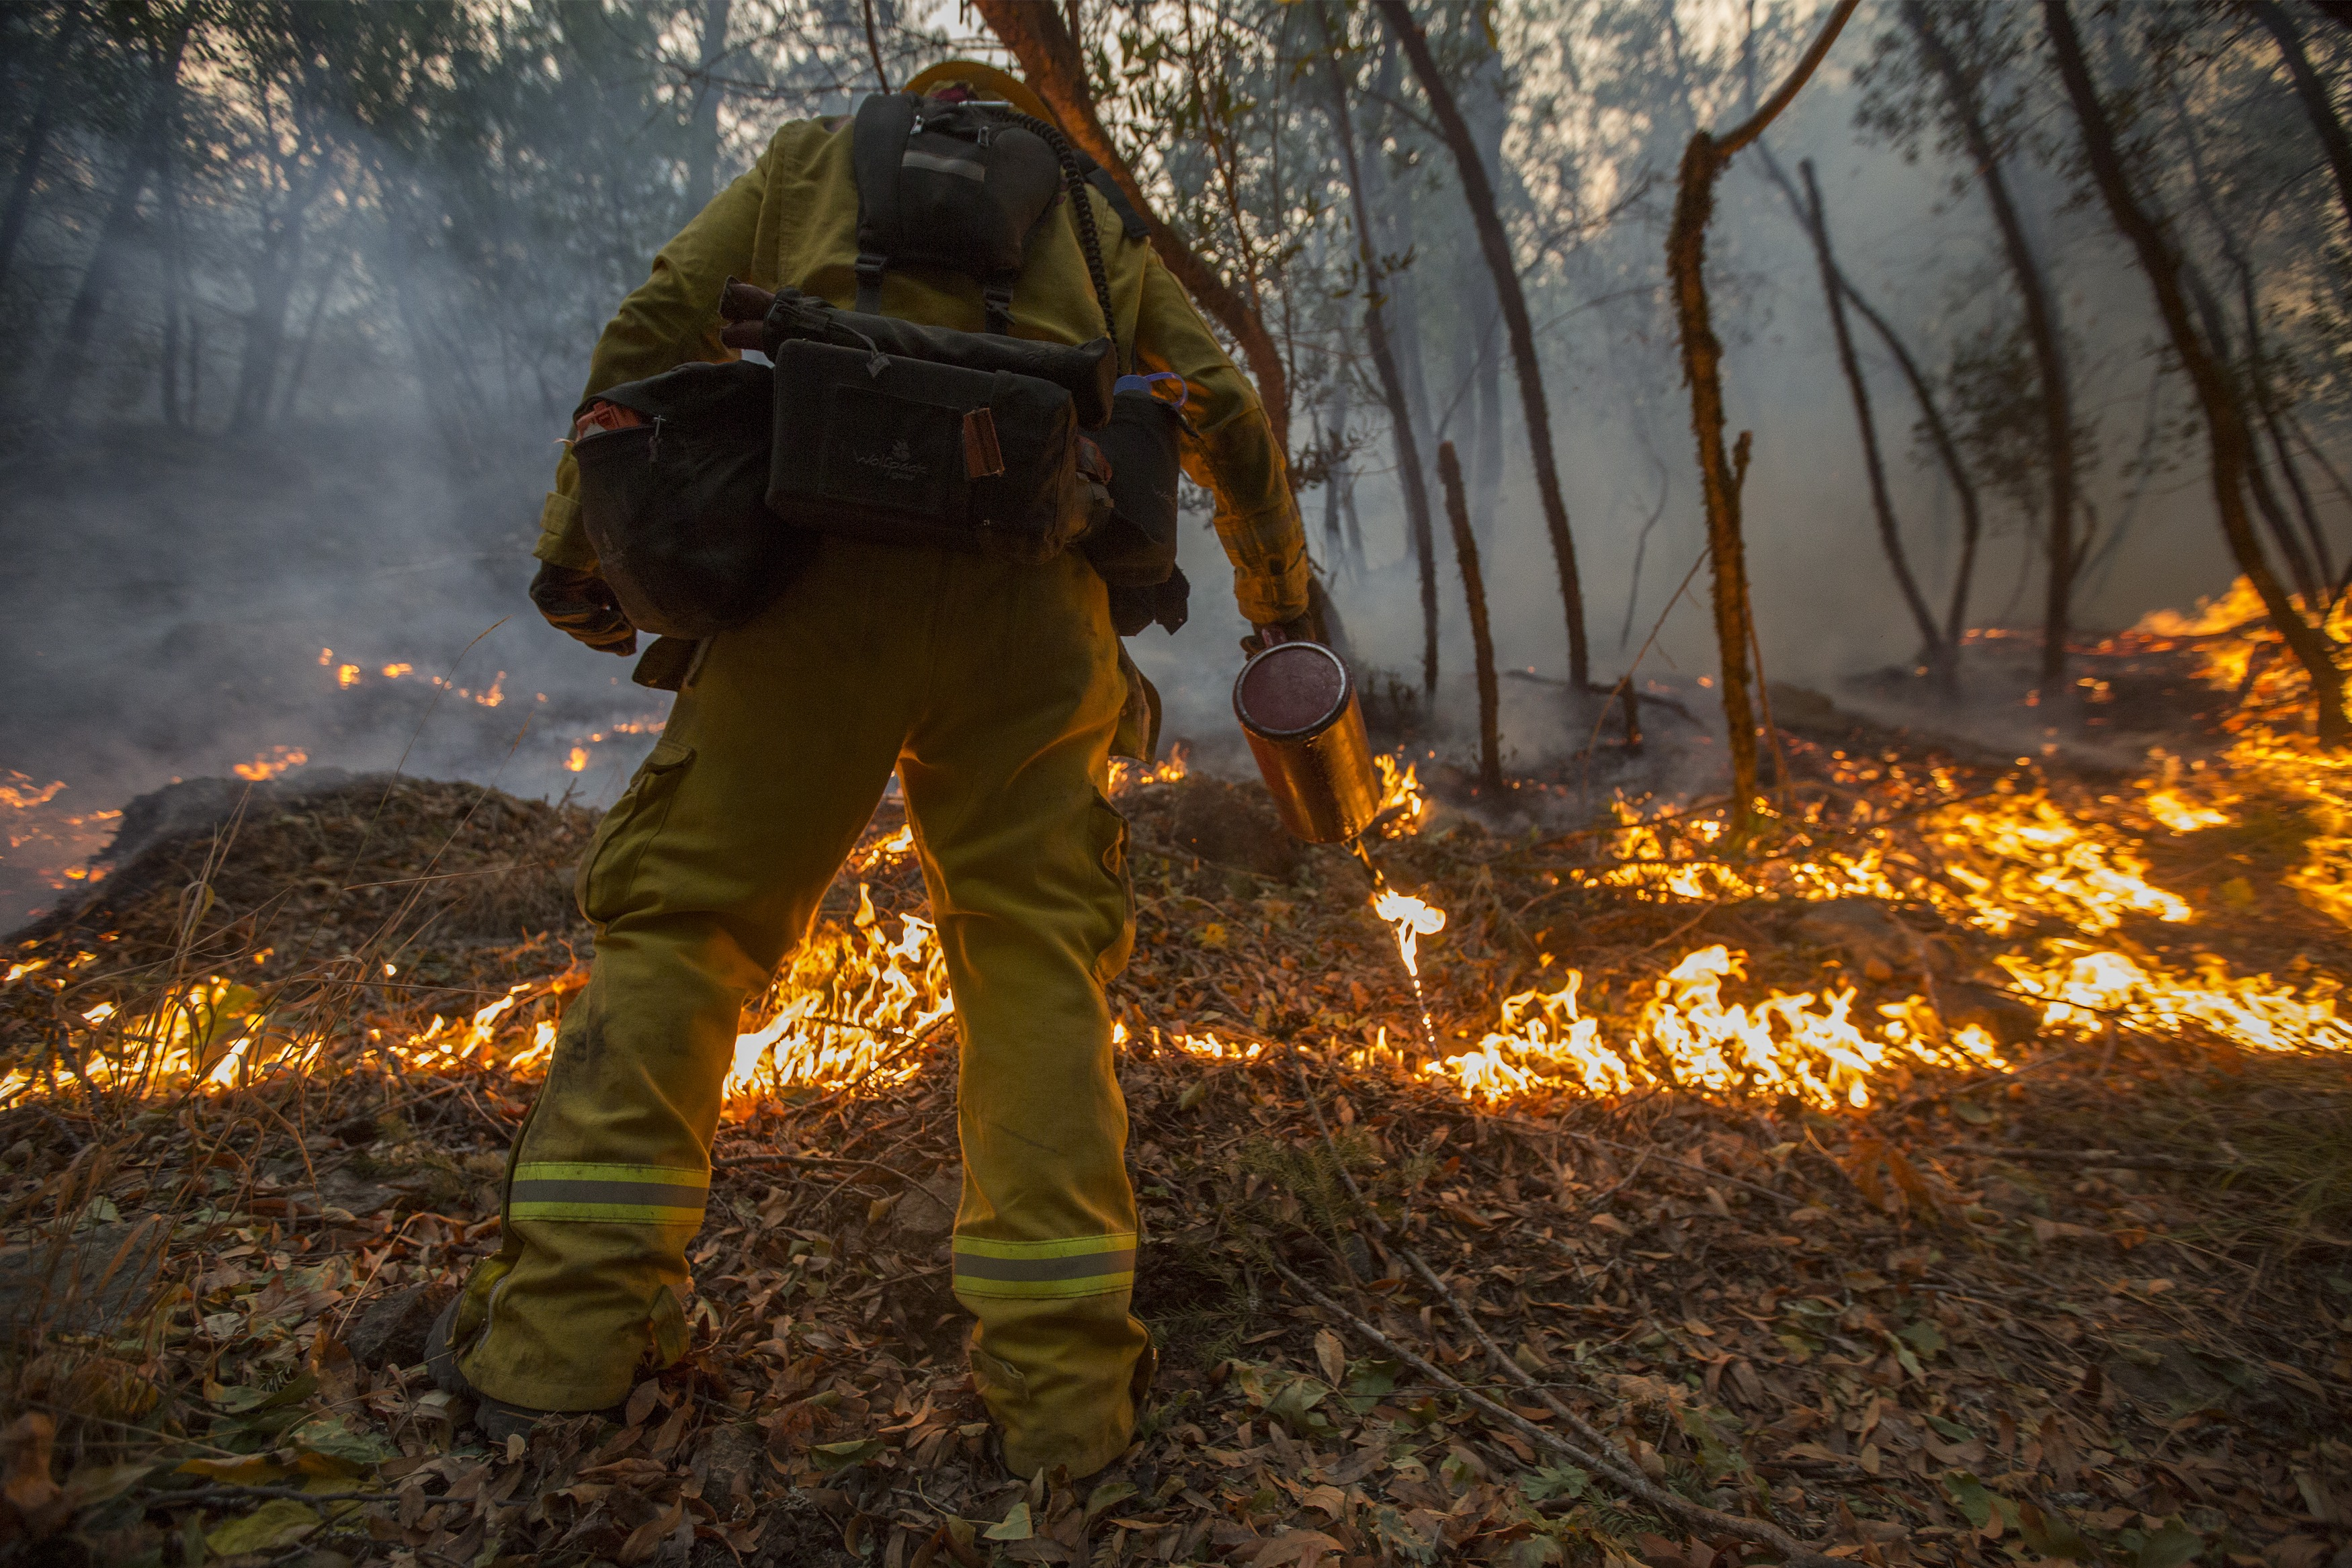 SANTA ROSA, CA -OCTOBER 15: A firefighter uses a drip torch to set a backfire to protect houses in Adobe Canyon during the Nuns Fire on October 15, 2017 near Santa Rosa, California. At least 40 people were killed while many are still missing, and at least 5,700 buildings have been destroyed since wildfires broke out a week ago. (Photo by David McNew/Getty Images)